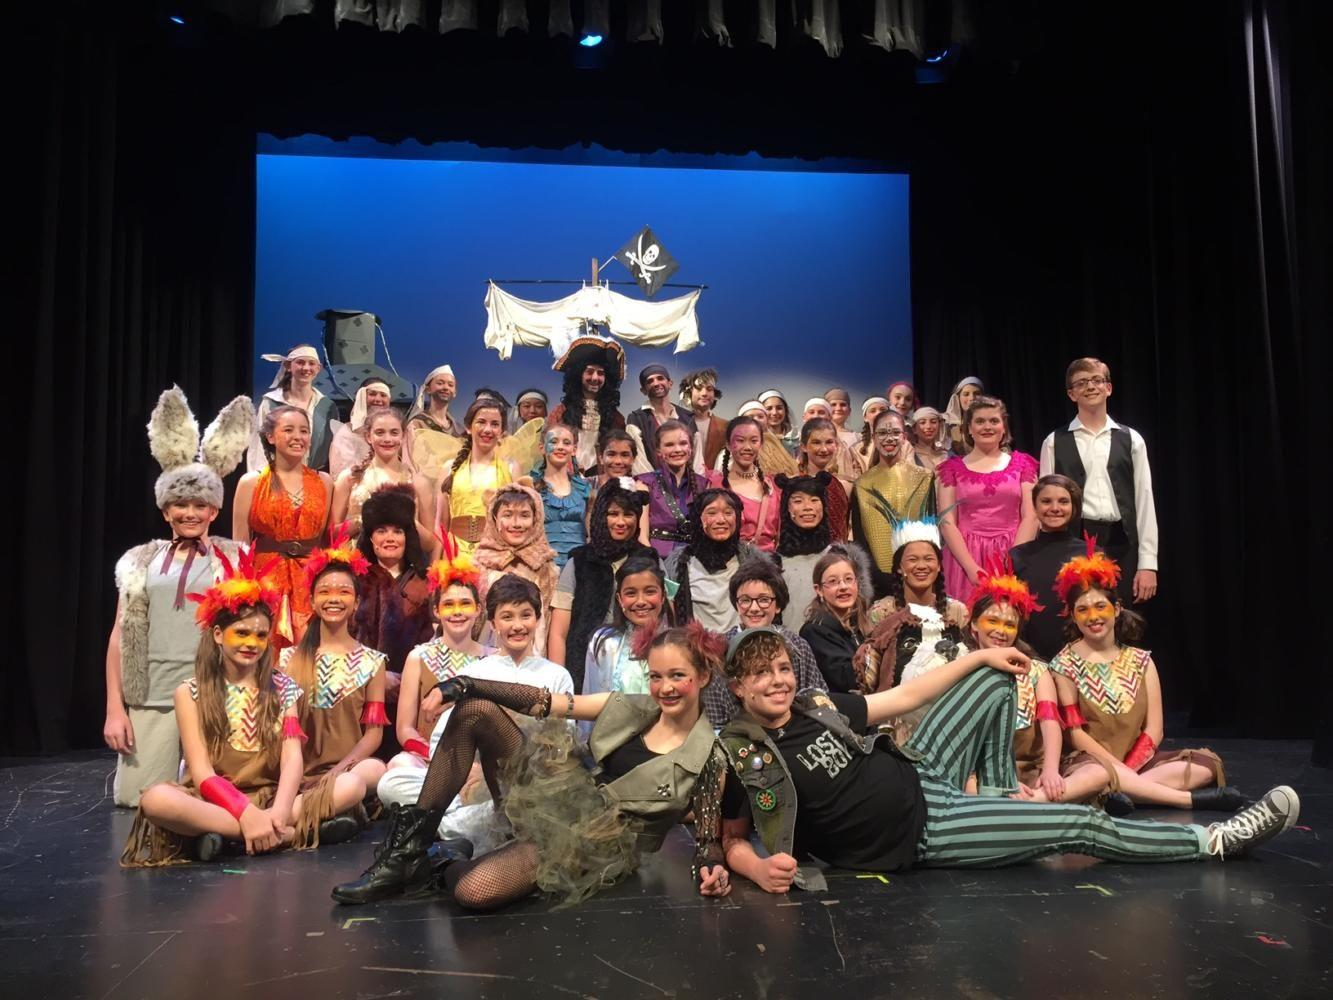 The+cast+of+%22Peter+Pan+Jr.%22+featured+many+young+actors+from+Ralston+Middle+School.